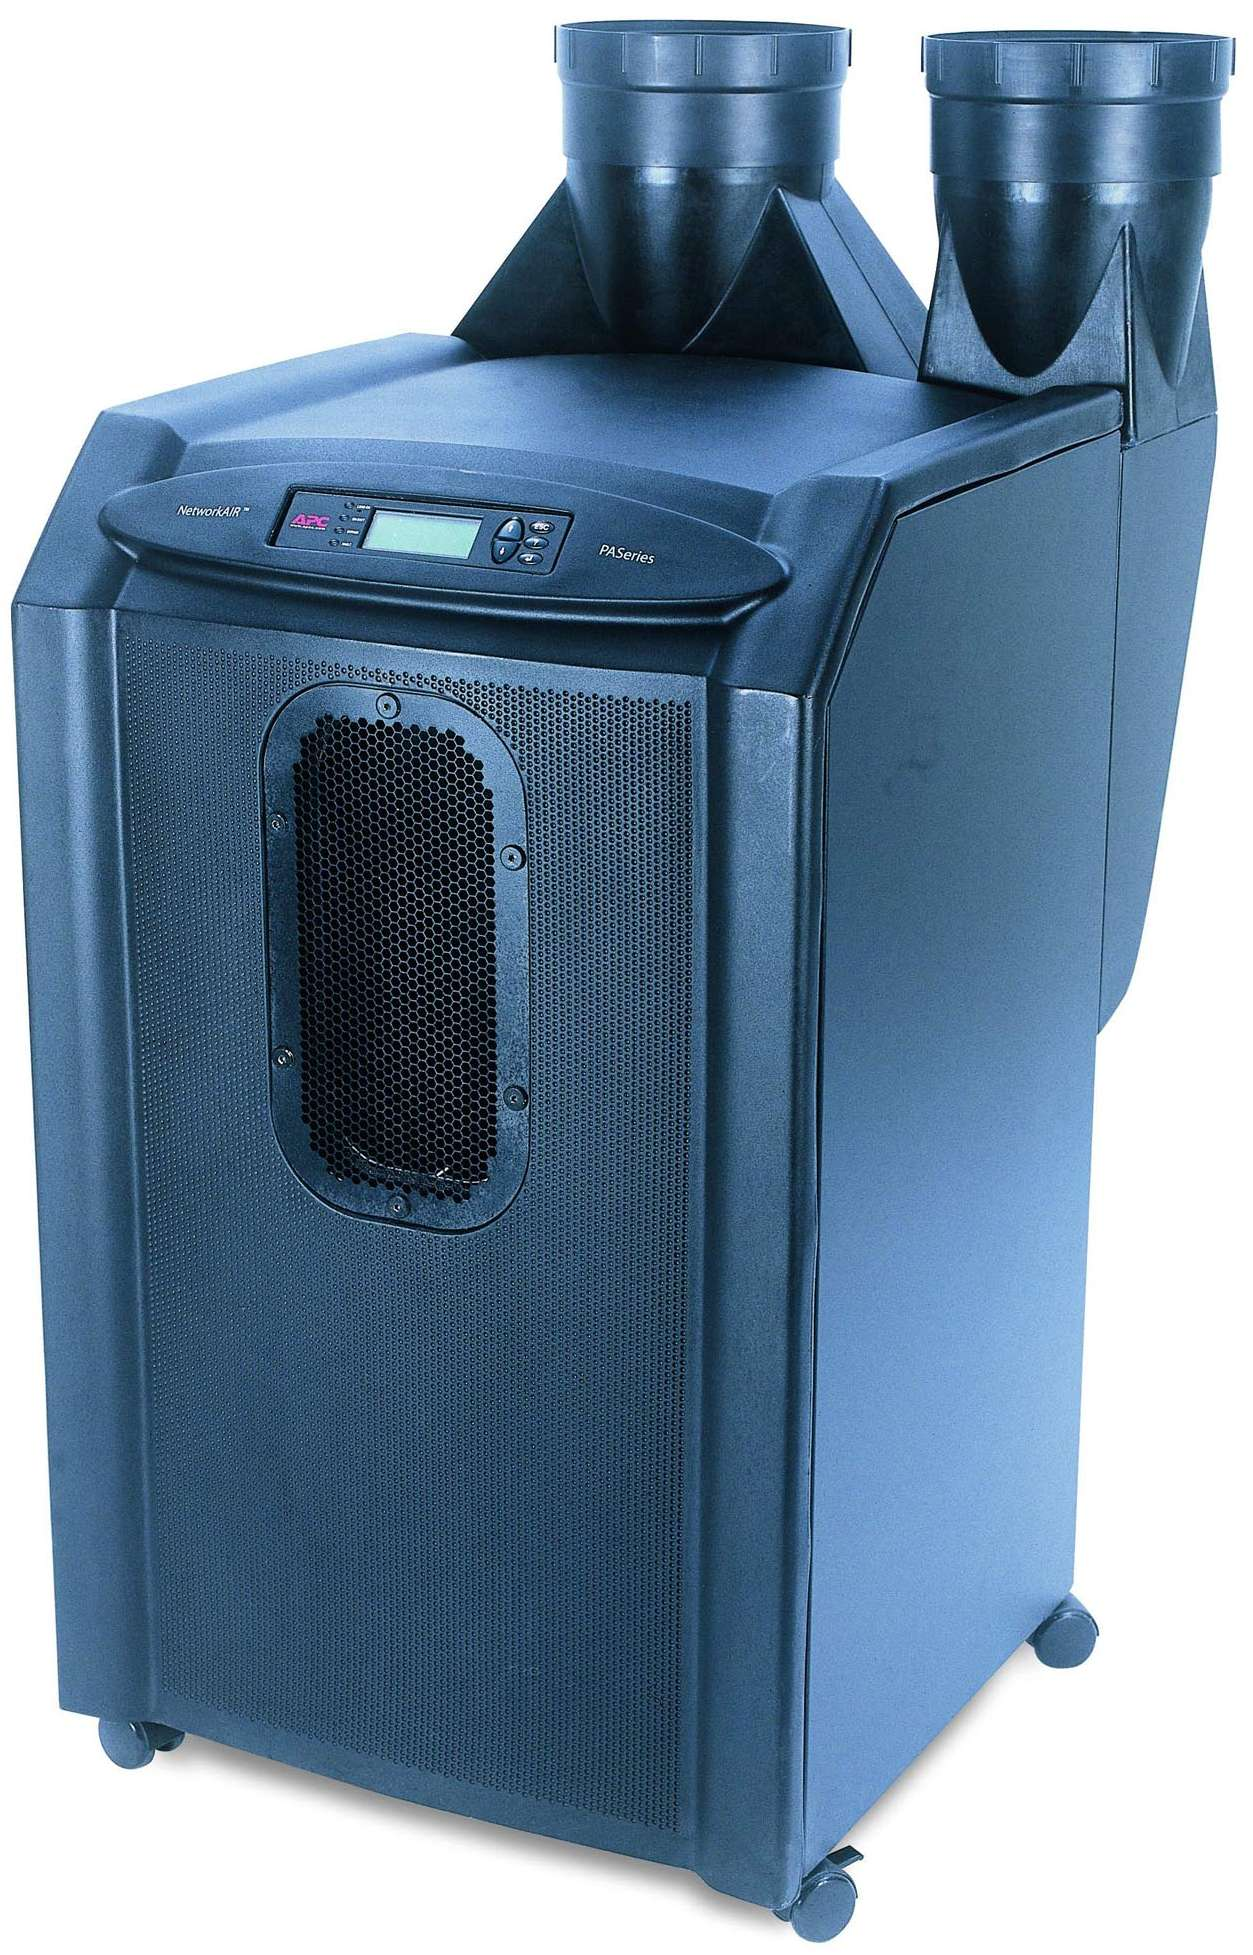 Apc 39 s new pa4000 portable air conditioner is ideal for for Small room portable air conditioners